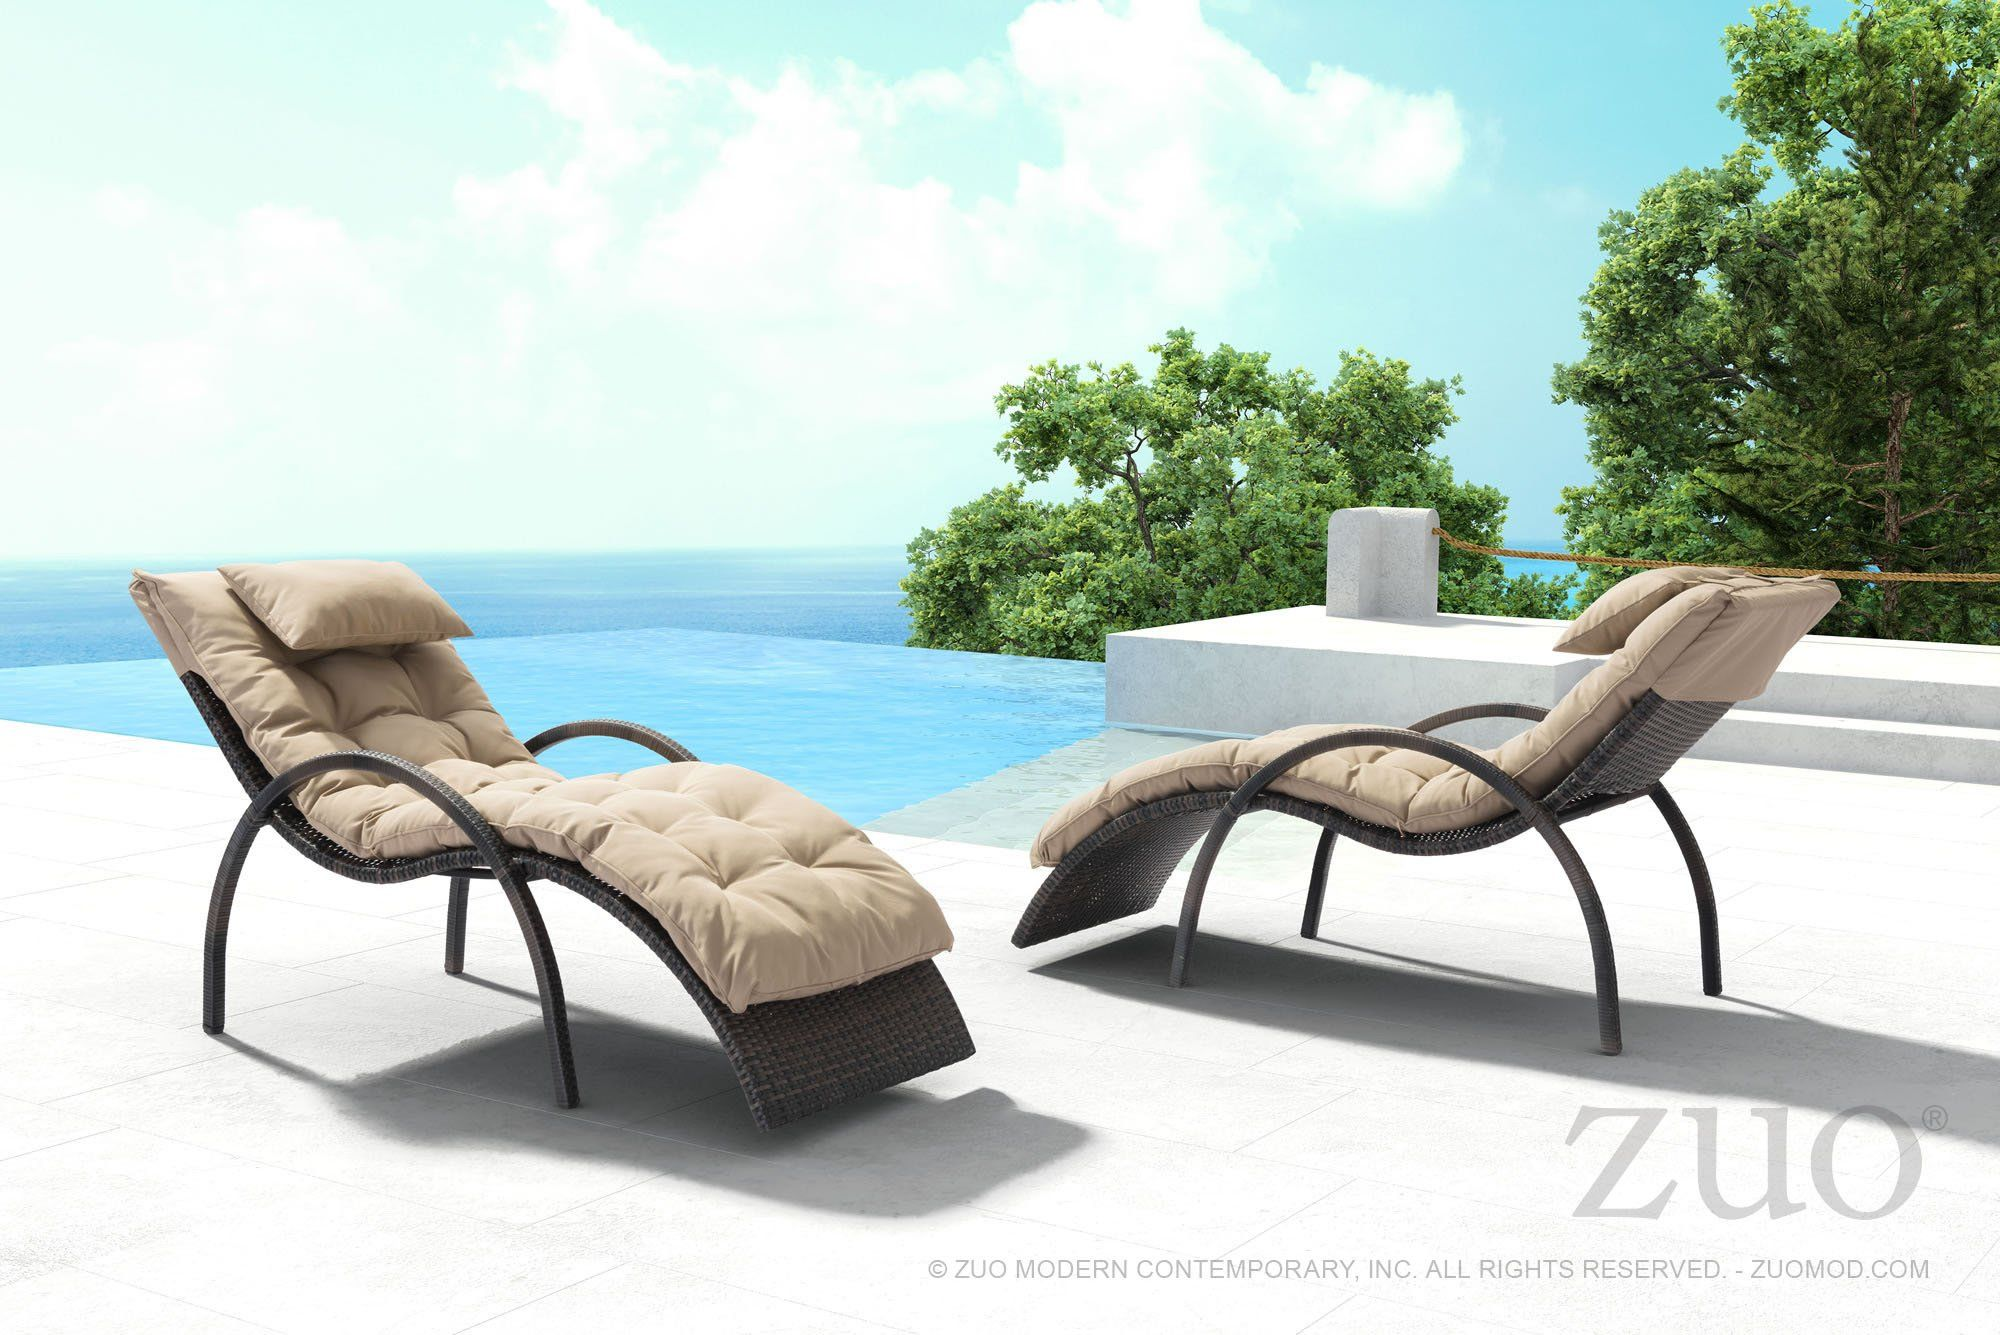 Info Features Dimensions Heaven On Earth The Blon Beach Lounge Chair A Sculpted Design And Comfortable Armrests With Ultra Plush